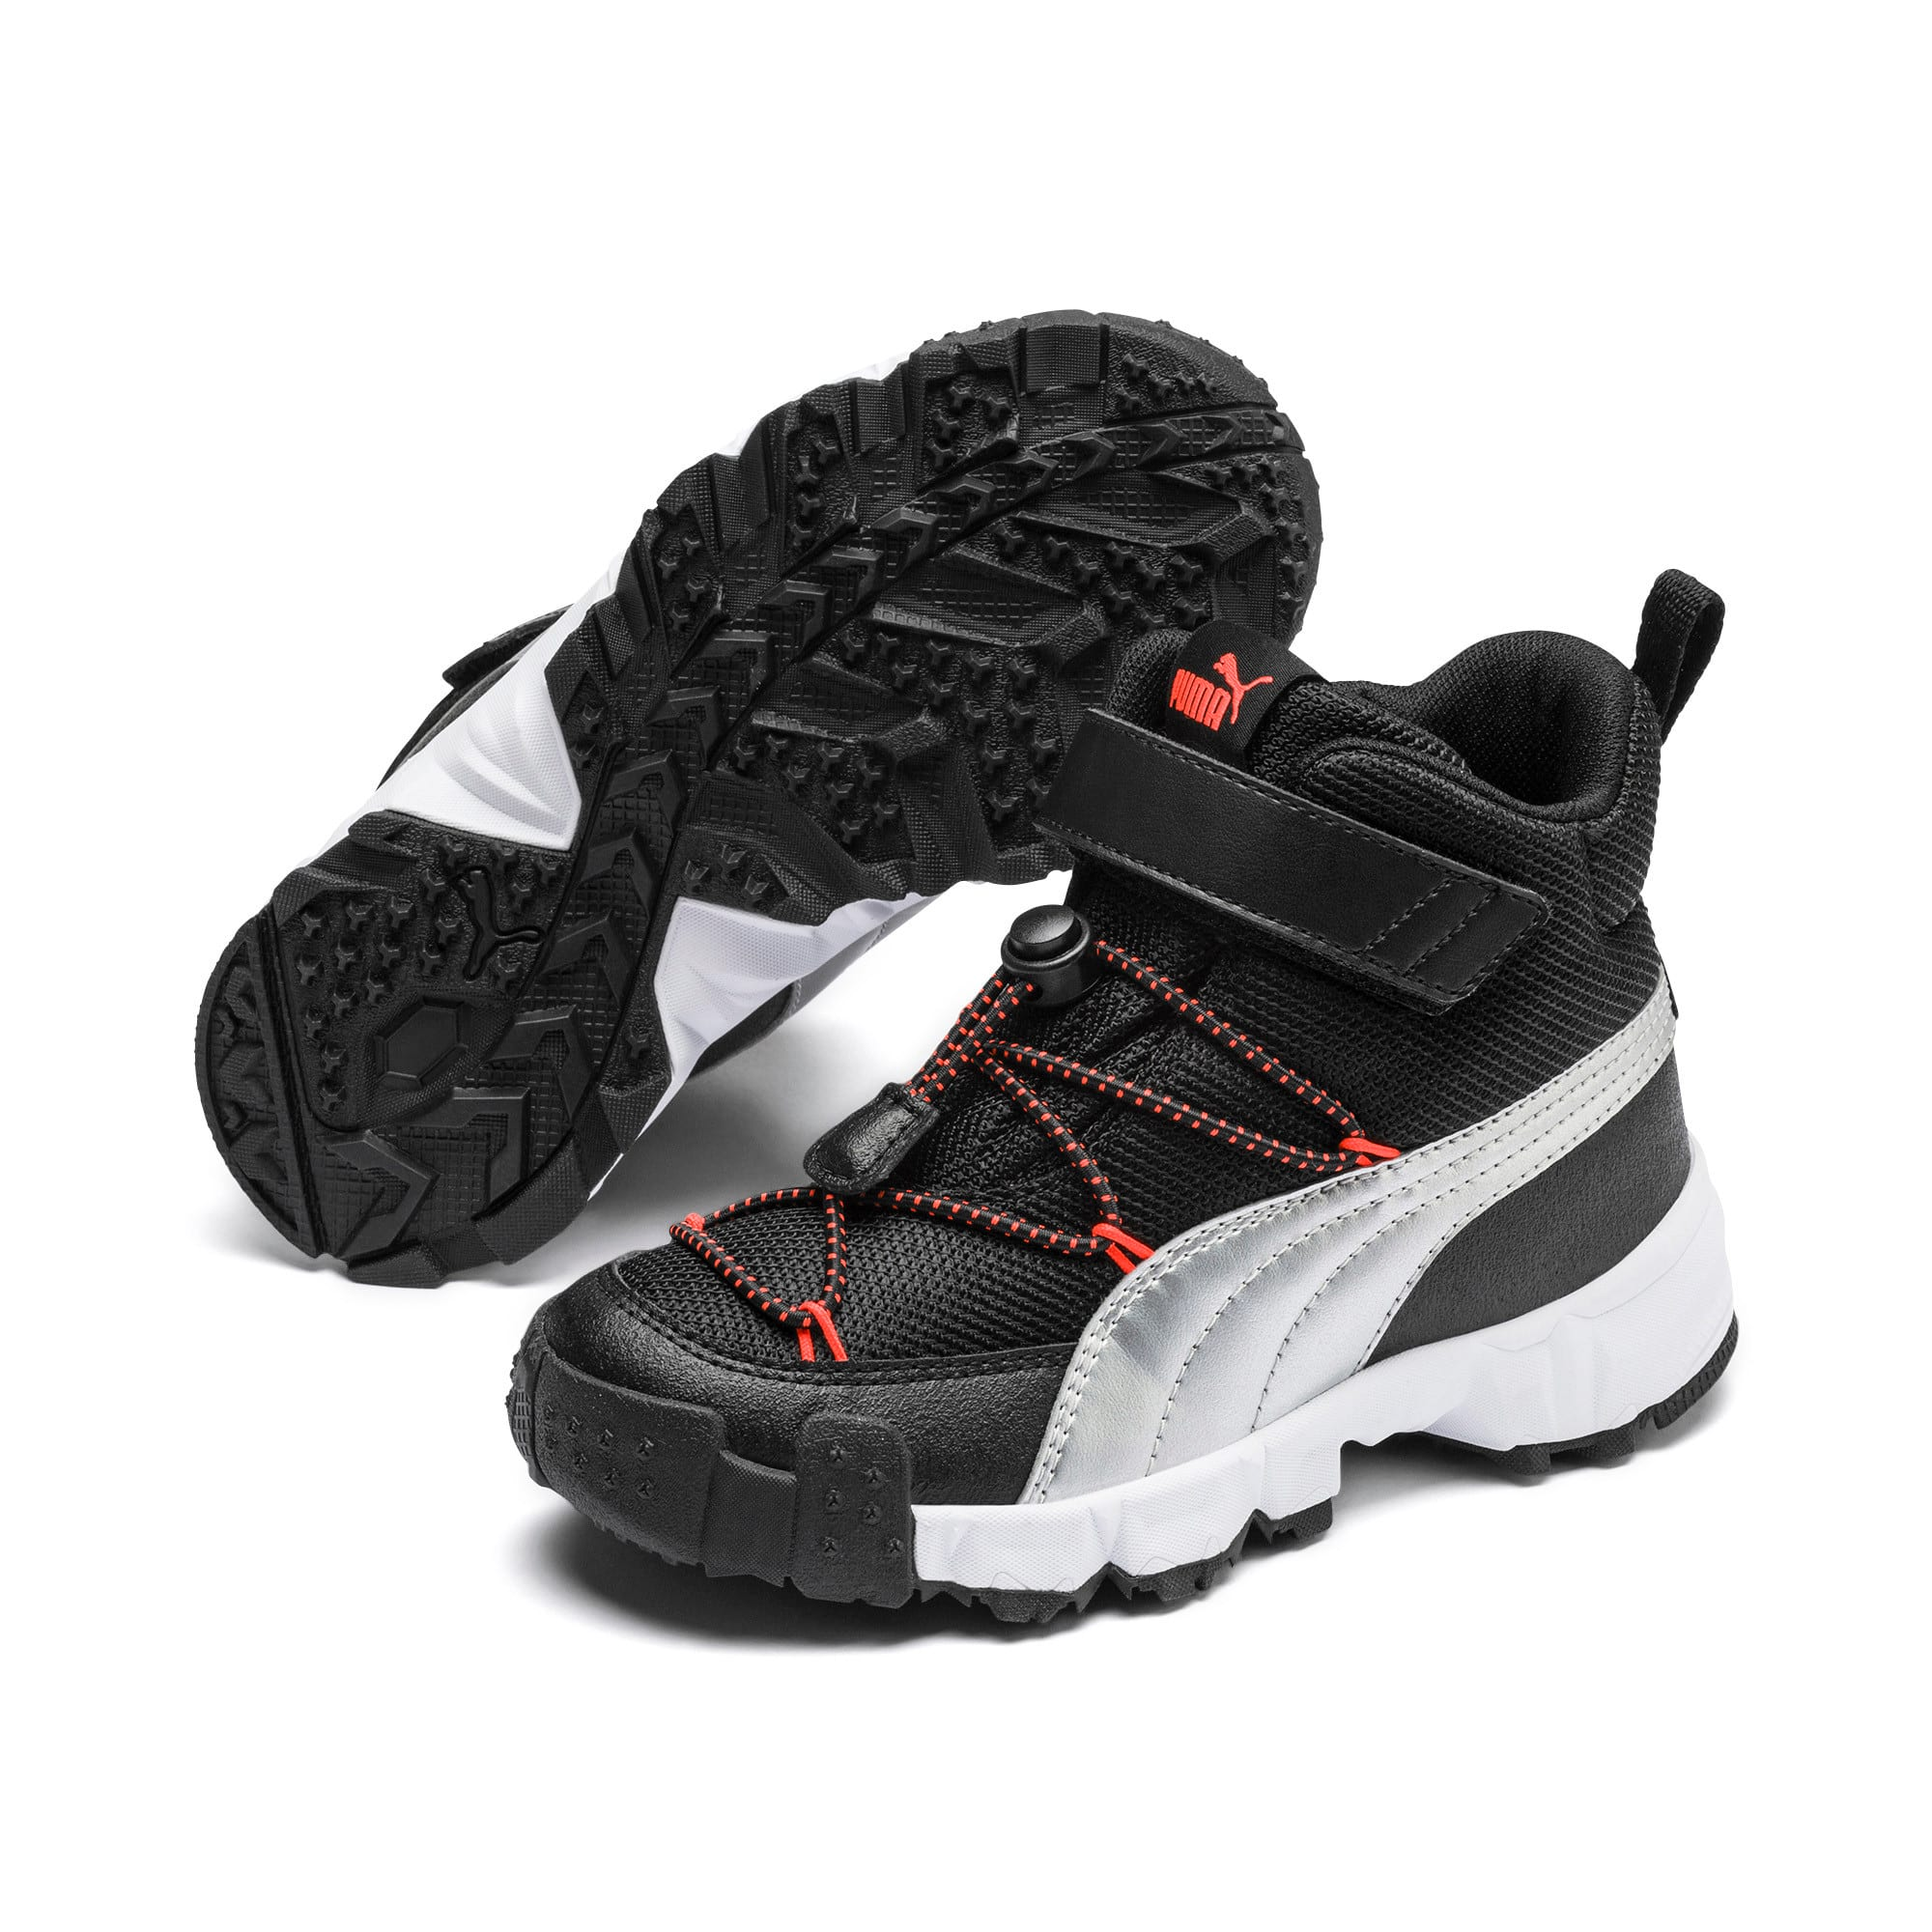 Thumbnail 2 of Maka V Kids Sneaker, Puma Black-Nrgy Red, medium